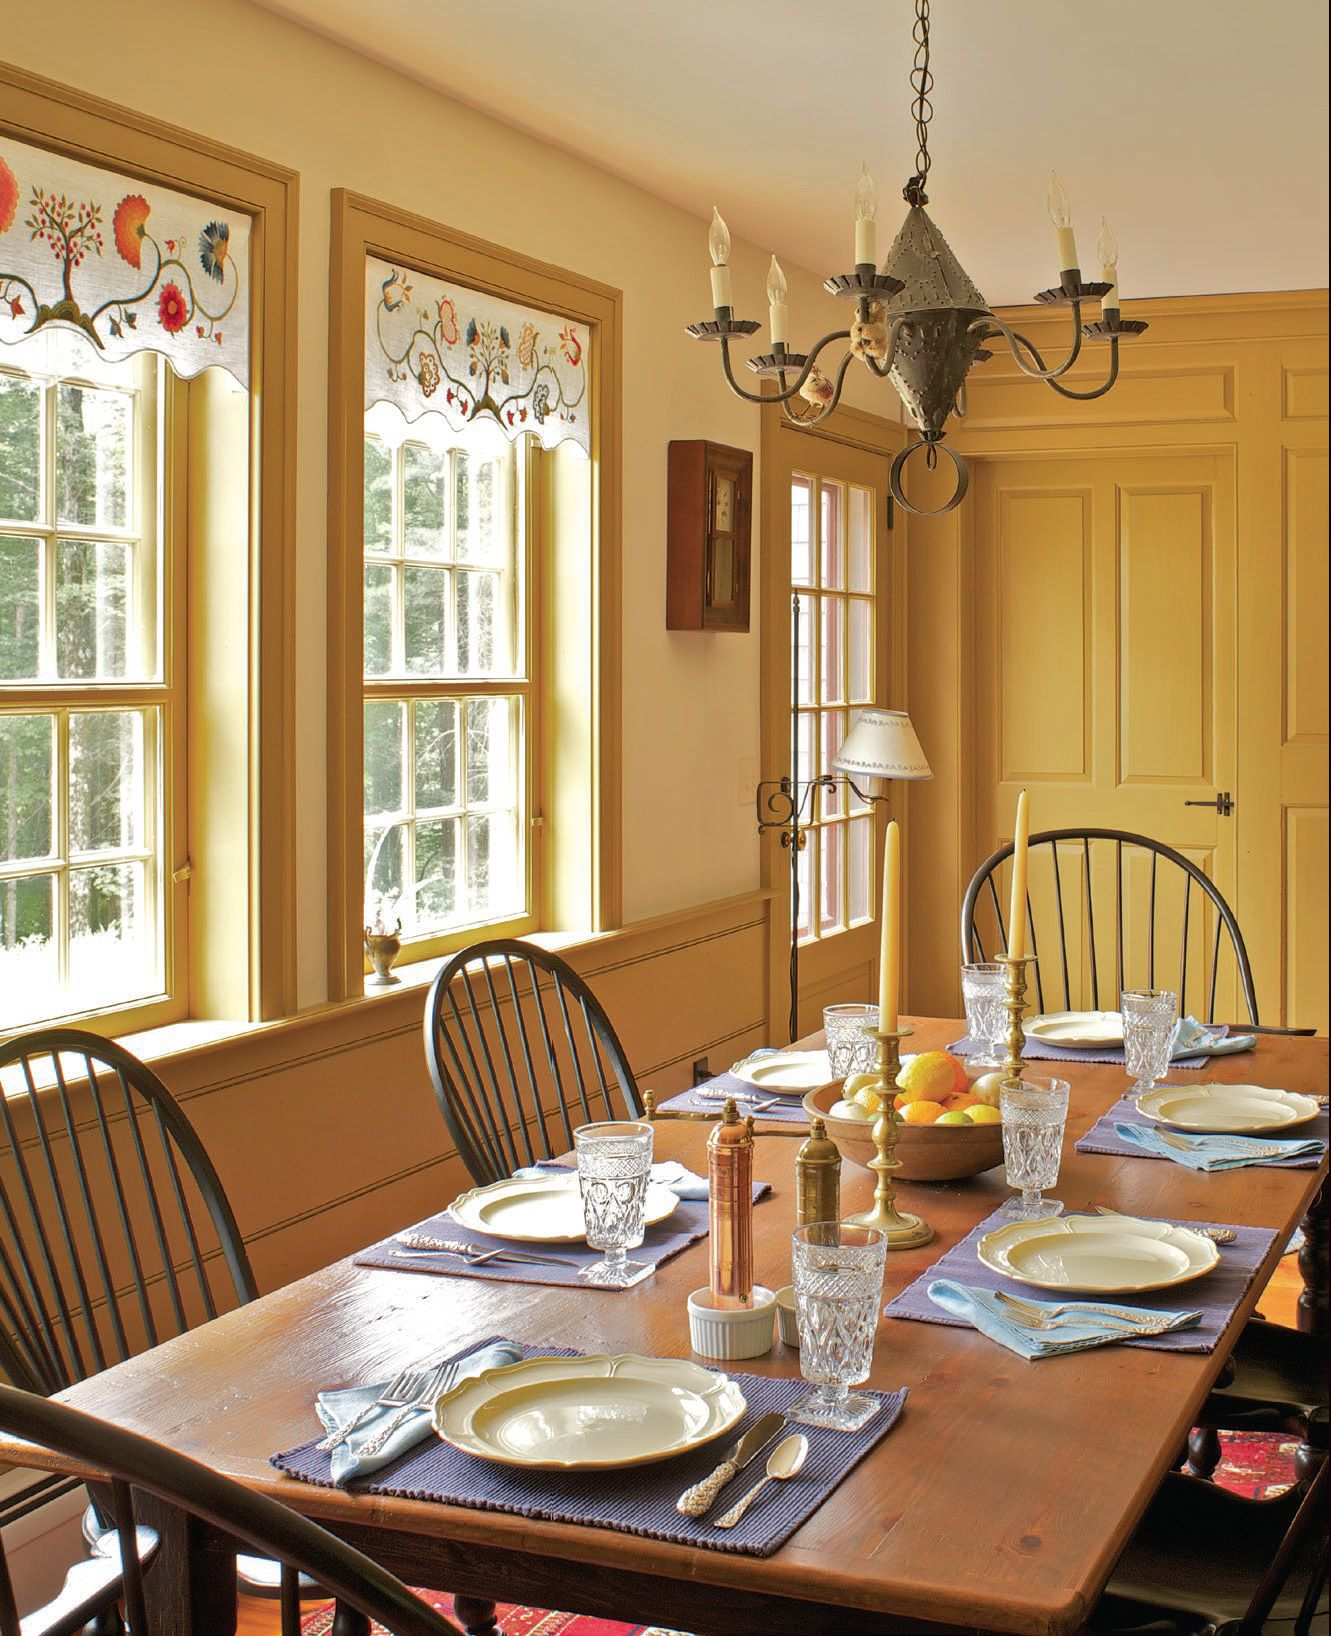 The Kitchen Wing Includes An Informal Dining Area With A Fully Paneled Fireplace Wall